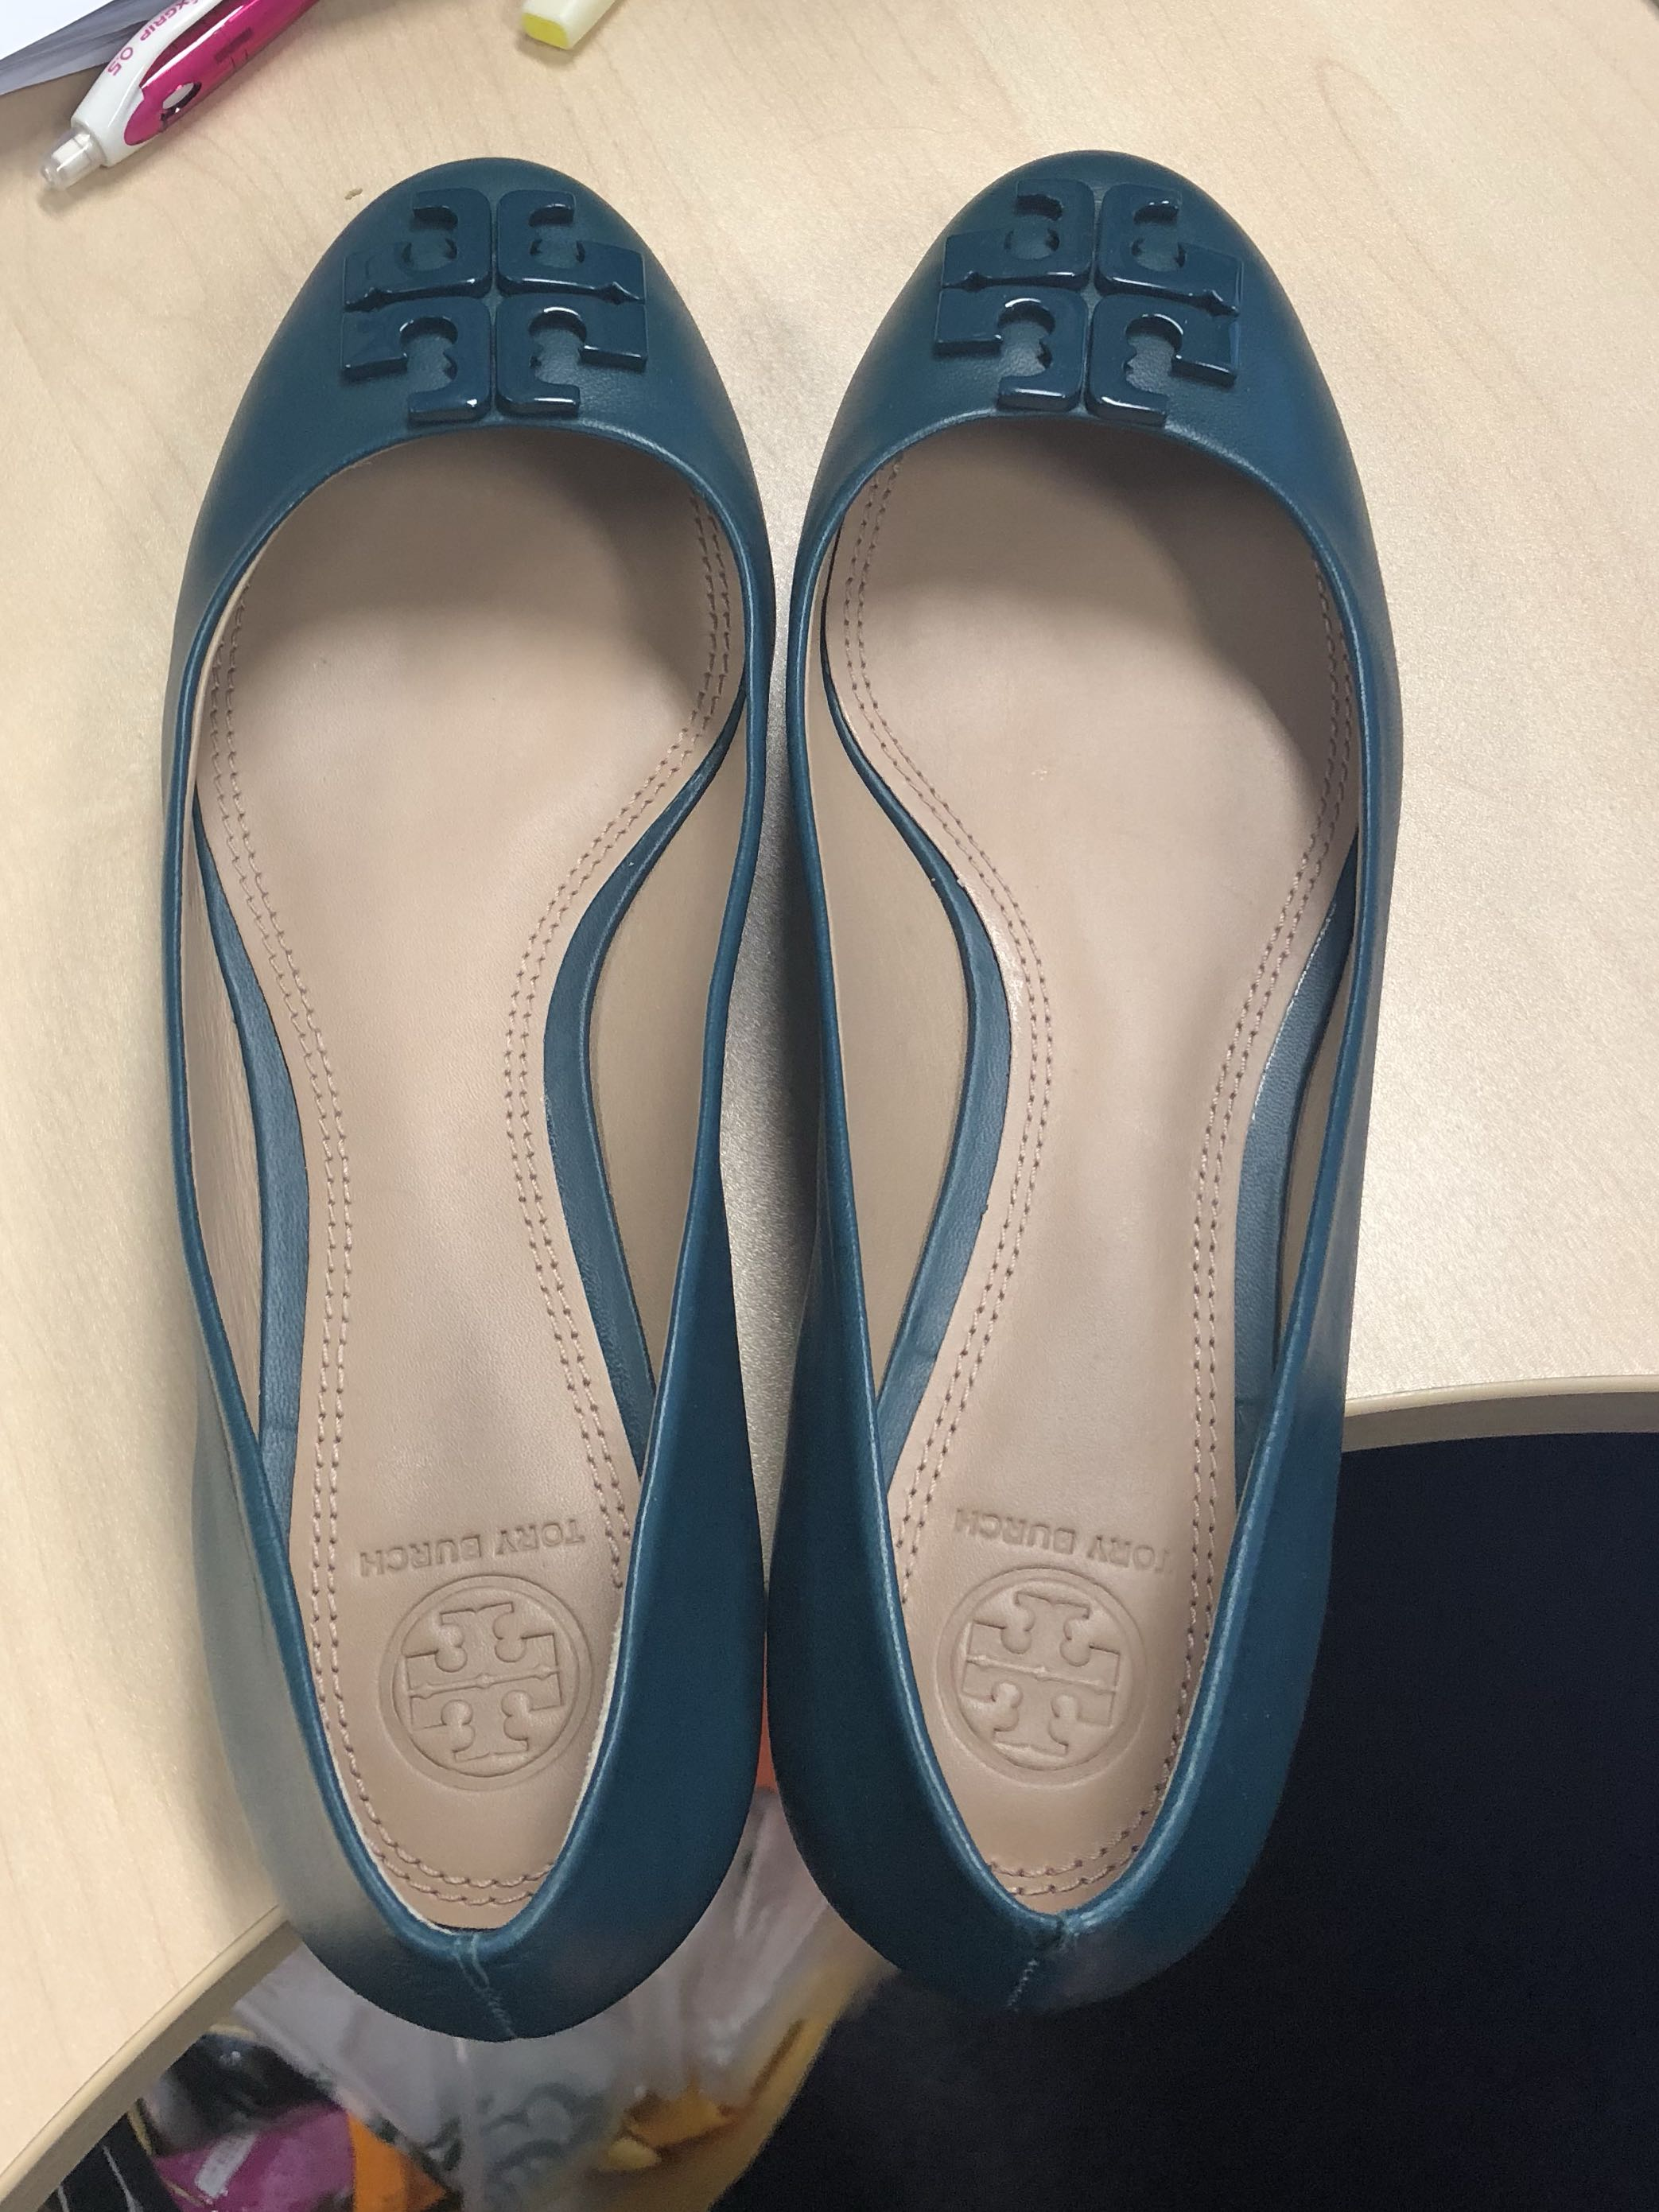 bd0f49172 Authentic Tory Burch flats in Green for same